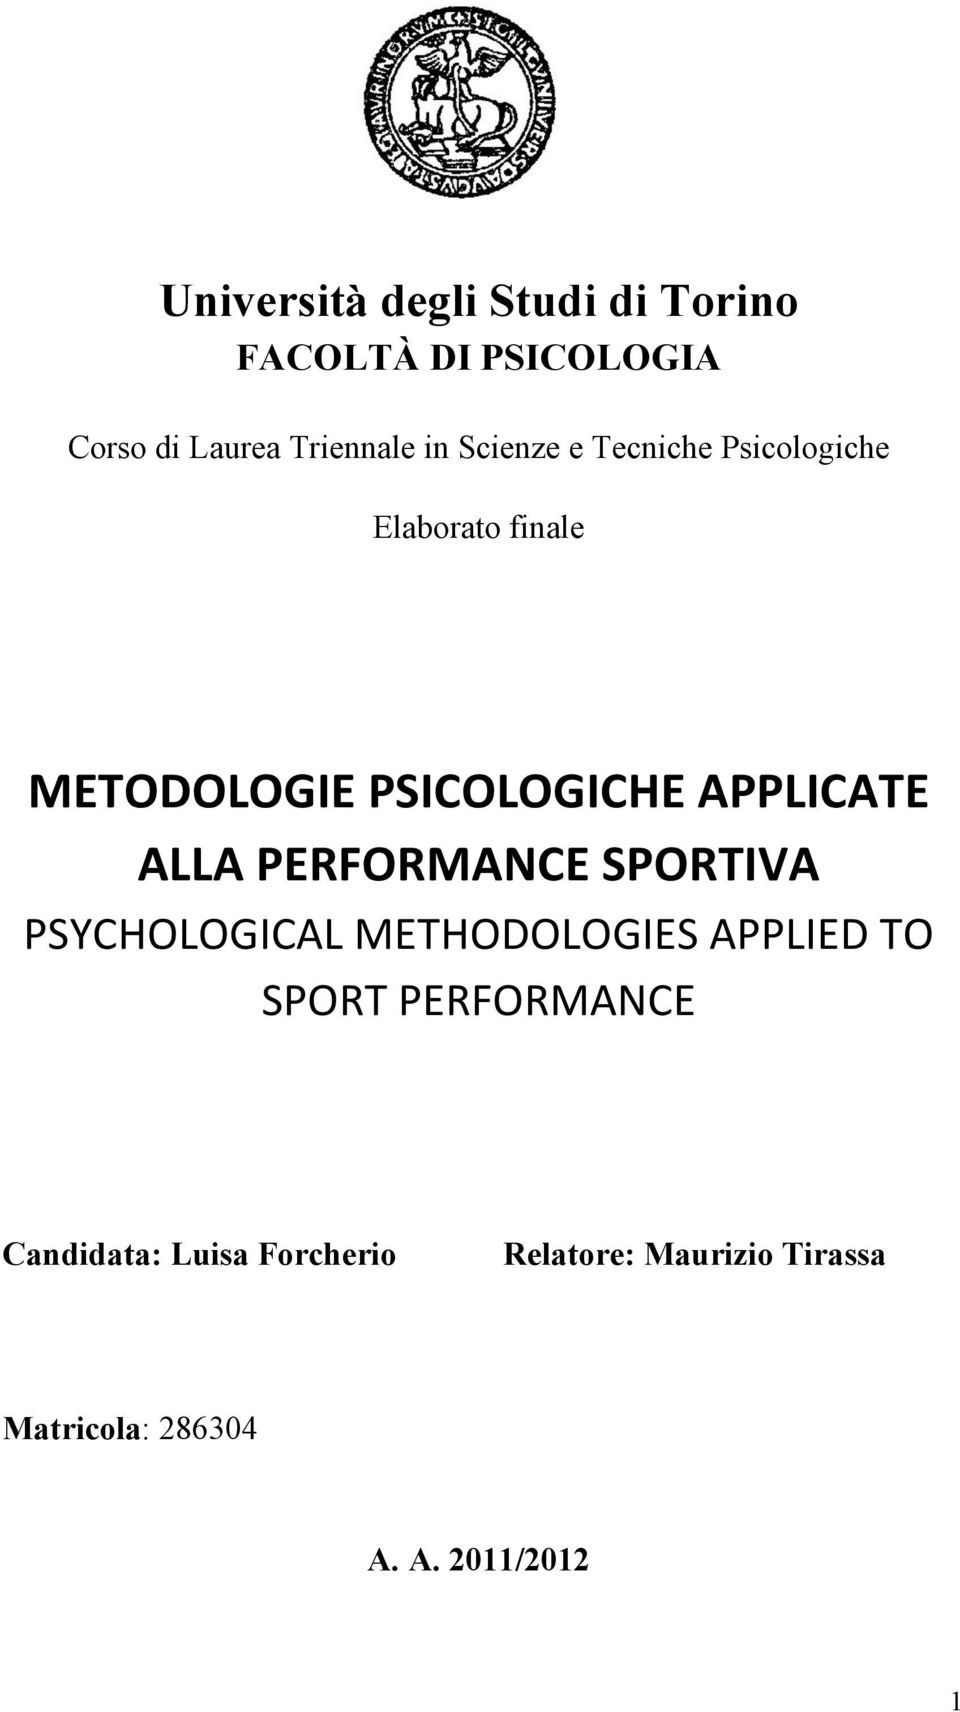 ALLA PERFORMANCE SPORTIVA PSYCHOLOGICAL METHODOLOGIES APPLIED TO SPORT PERFORMANCE